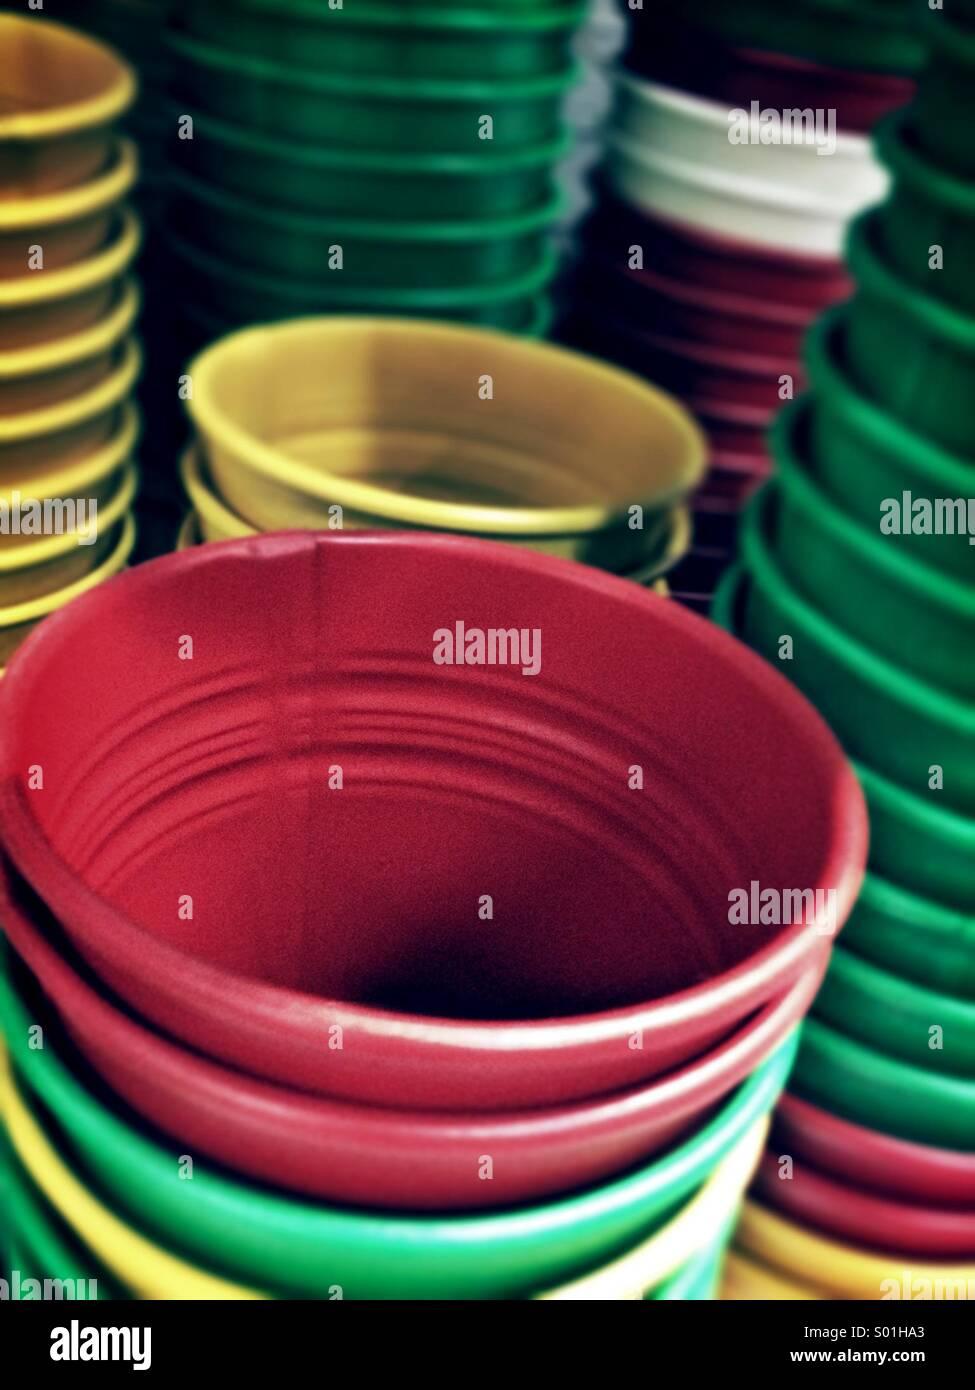 Colour plant pots - Stock Image